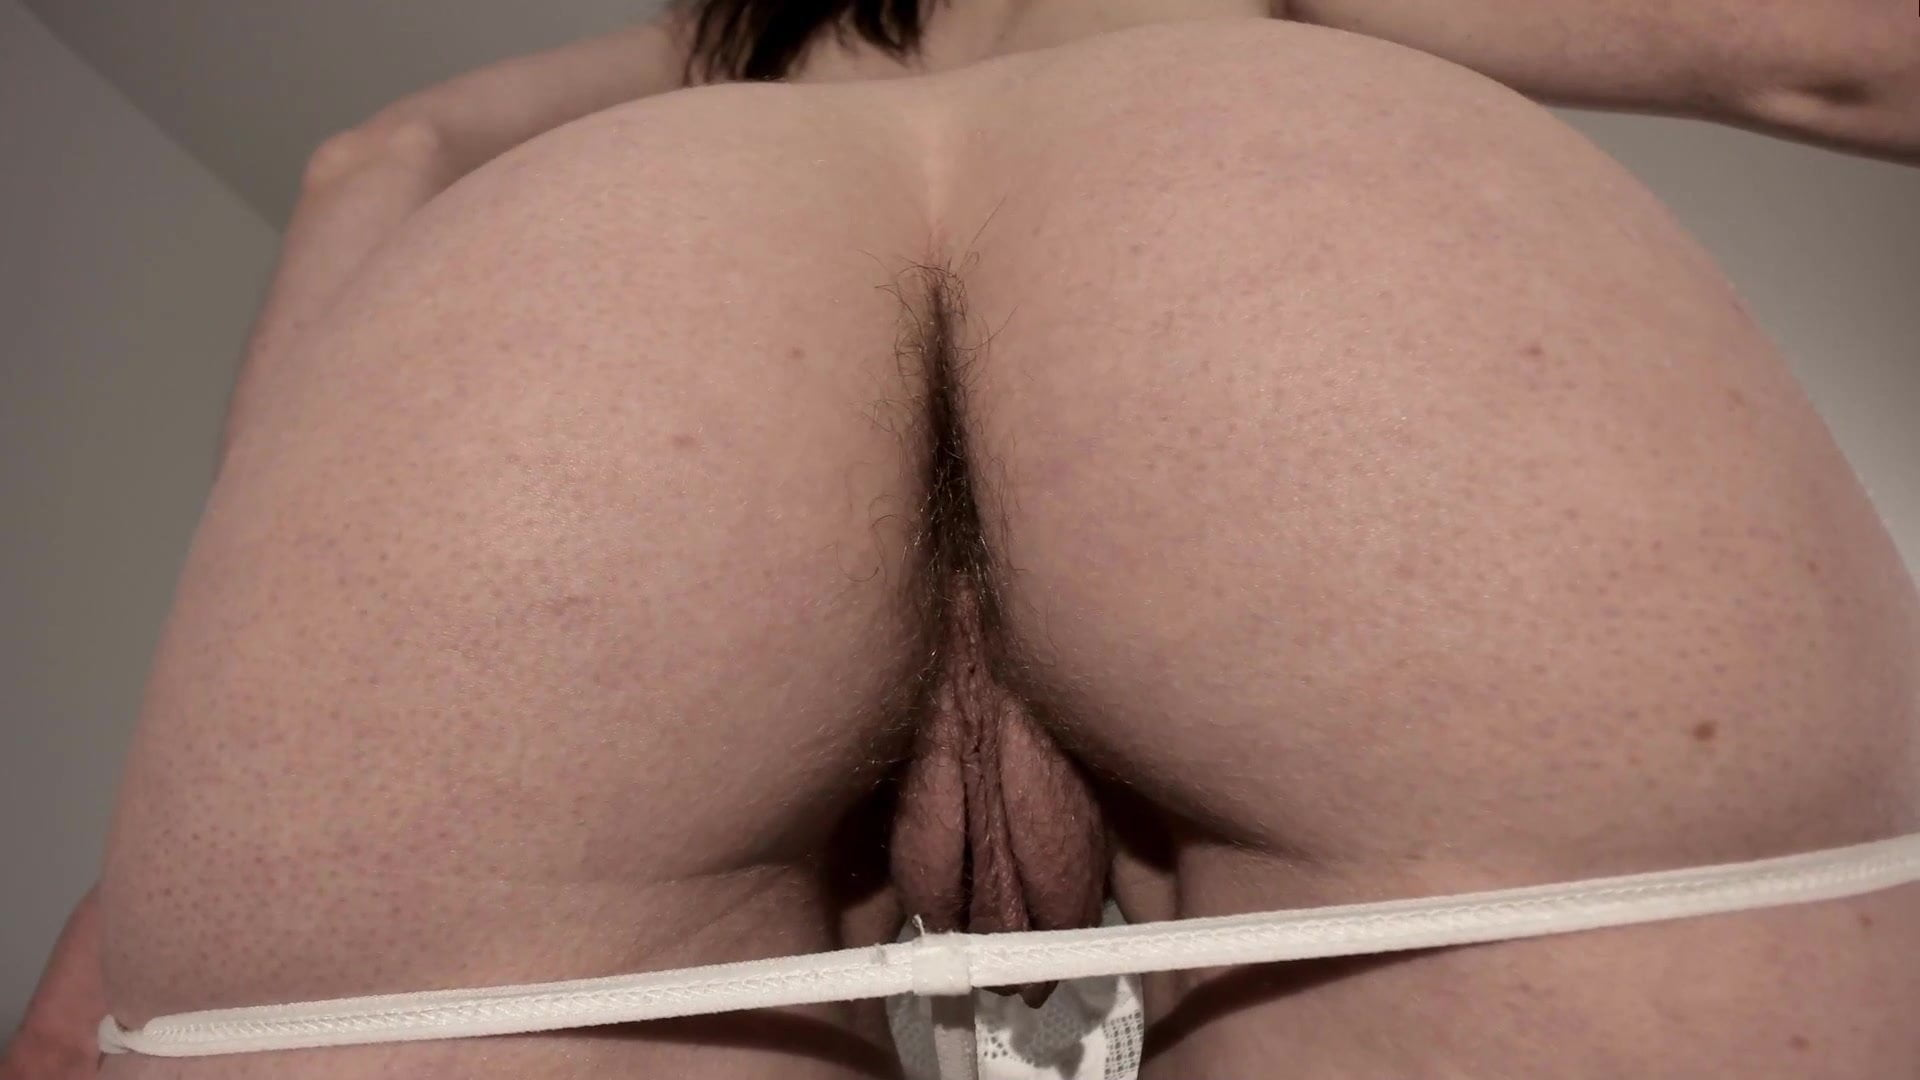 Rear Pussy View